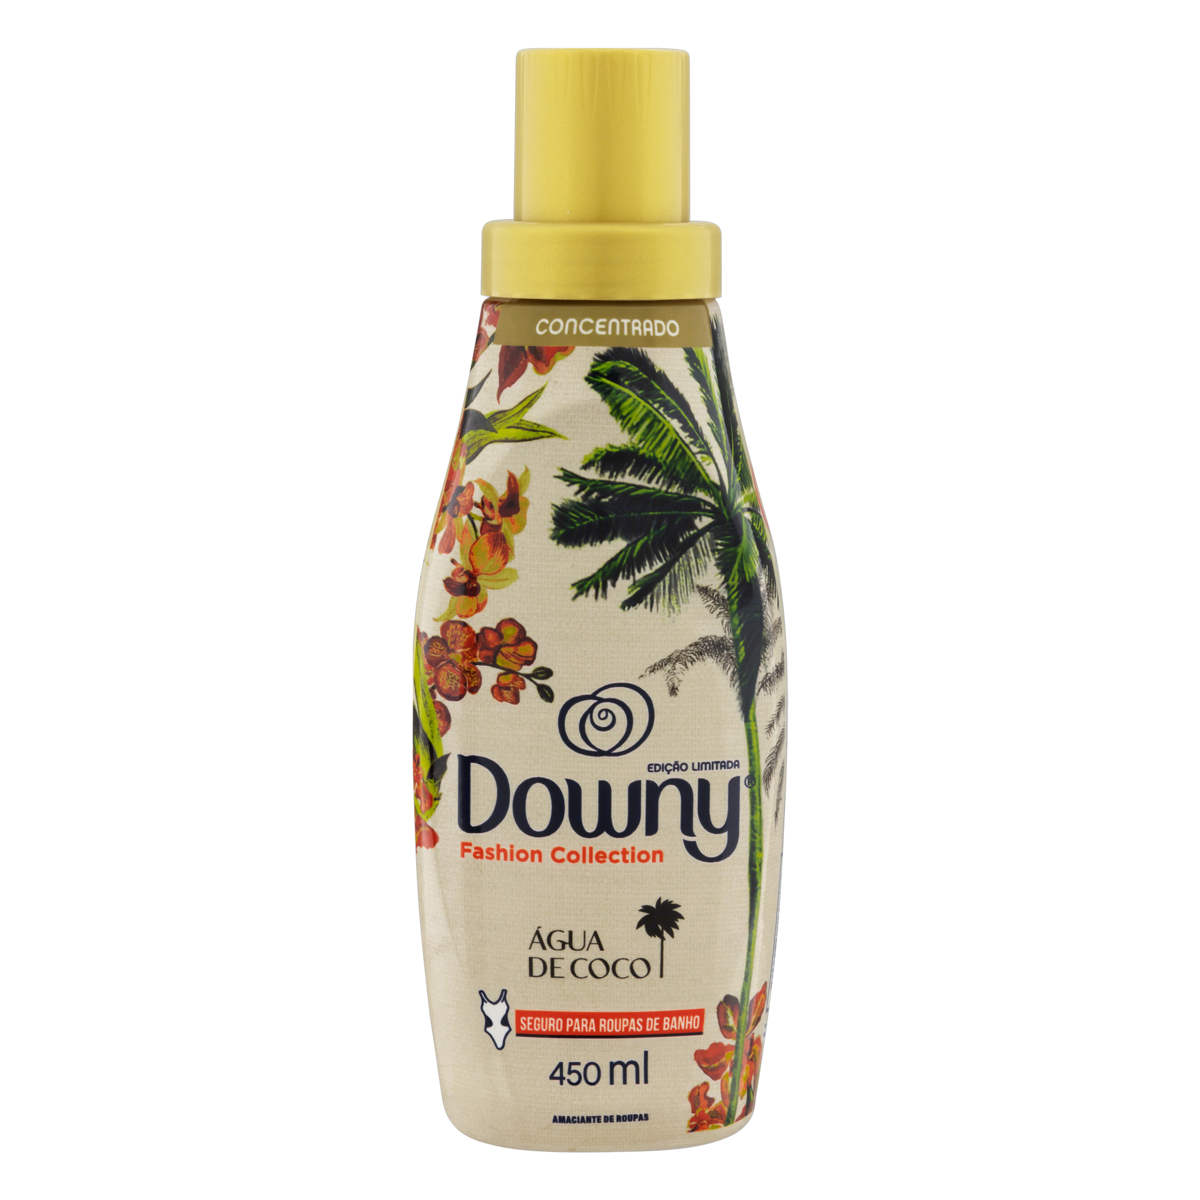 7500435160803 - AMACIANTE DE ROUPA CONCENTRADO ÁGUA DE COCO DOWNY FASHION COLLECTION FRASCO 450ML